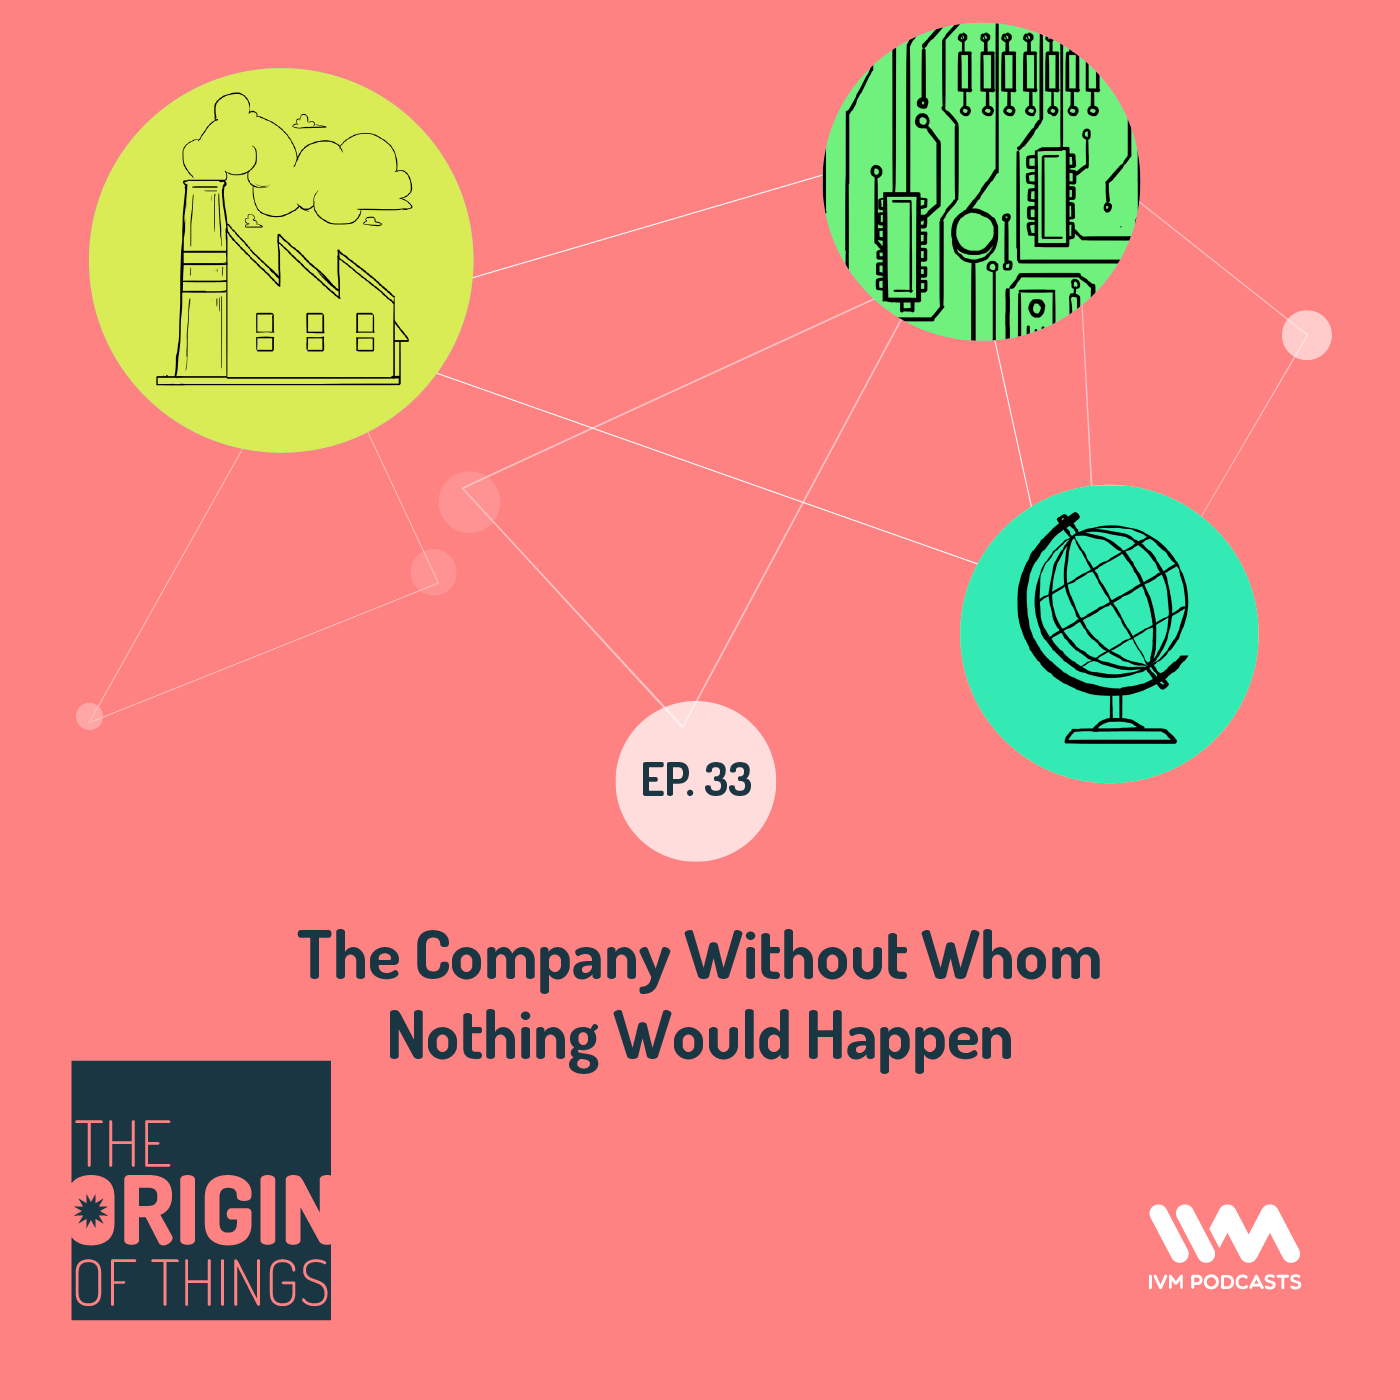 Ep. 33: The Company Without Whom Nothing Would Happen